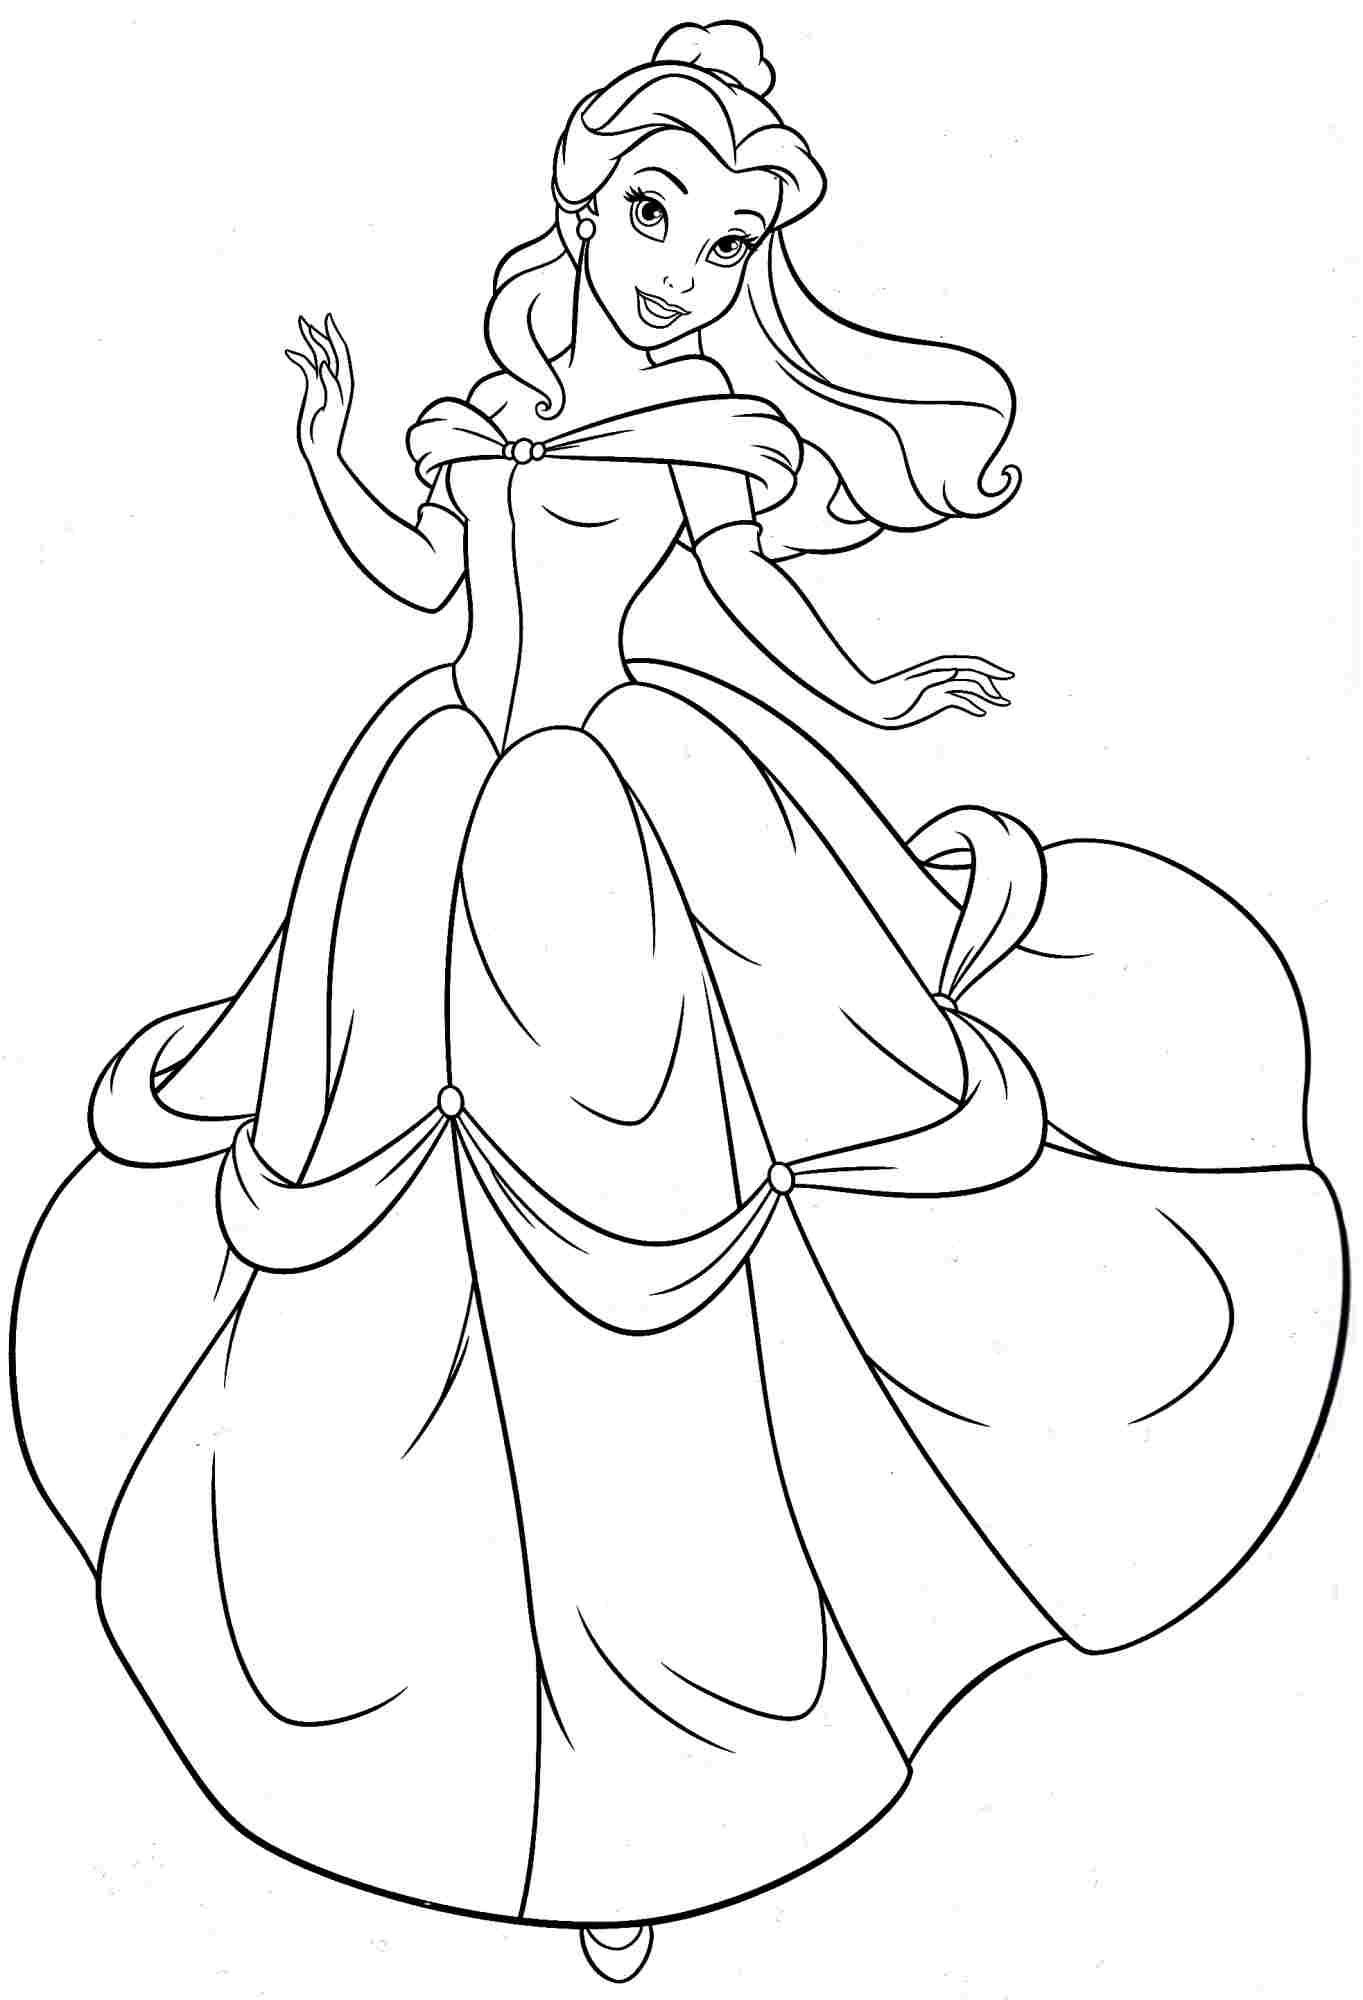 Disney Princess Belle Colouring Pictures | Coloring Pages with regard to Disney Princess Belle Coloring Pages For Girls 29431